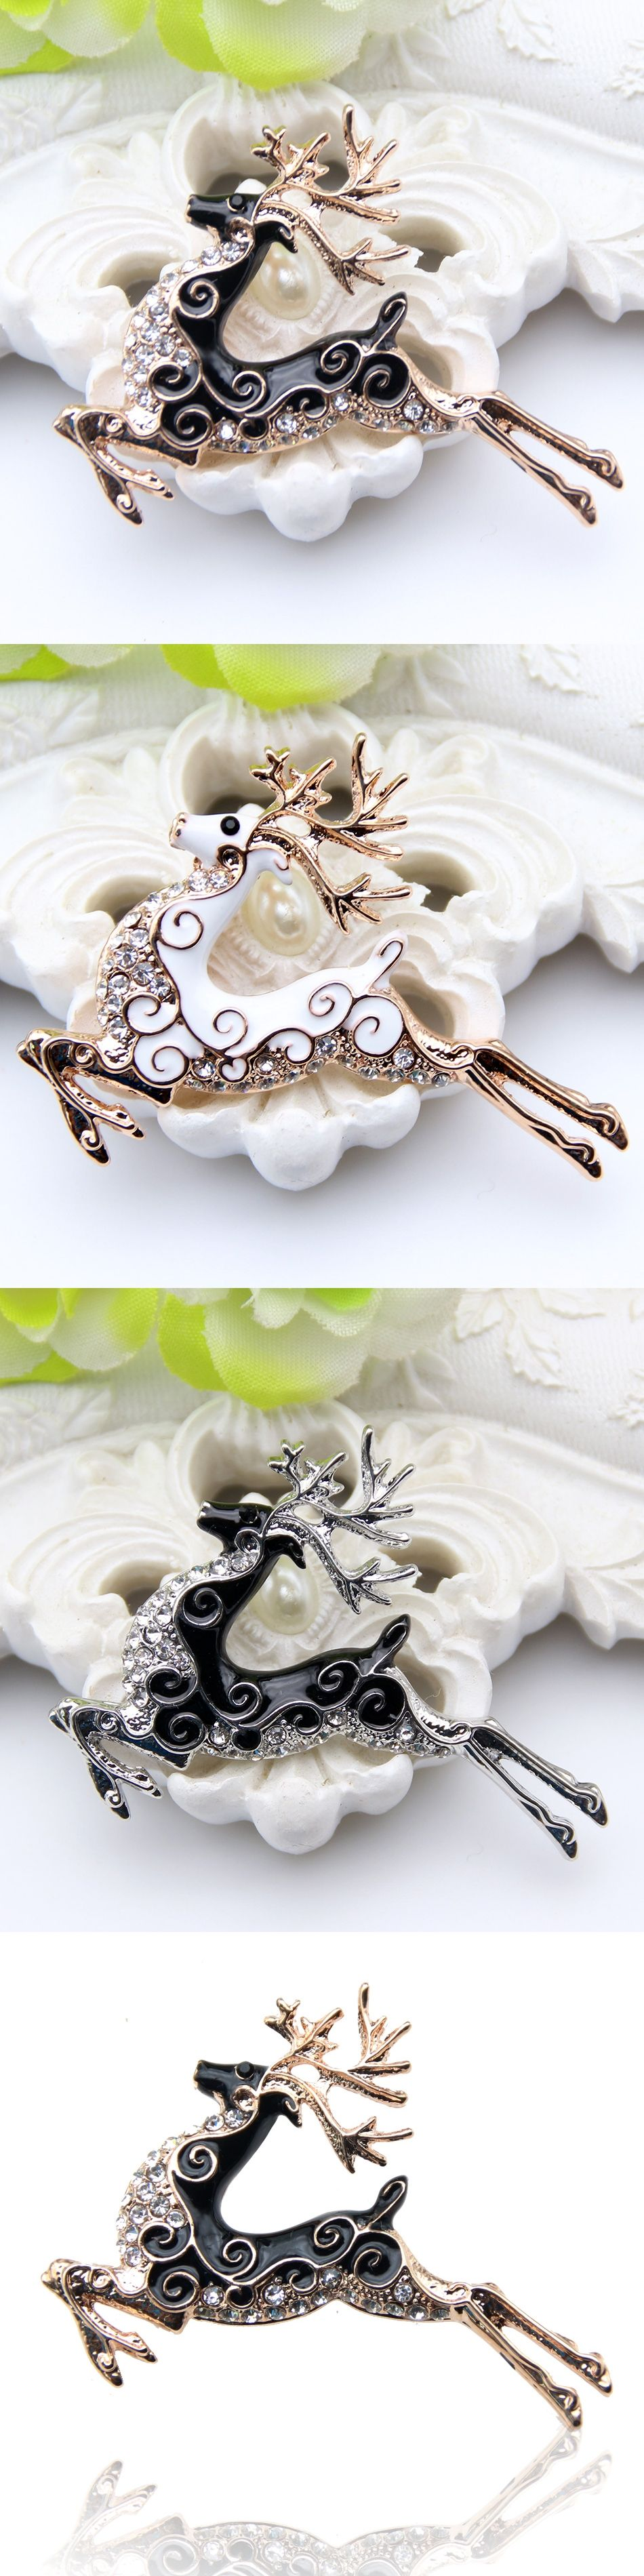 cz deer master brooches carnegie v enamel brooch signed id figural img giraffe hattie pin at jewelry